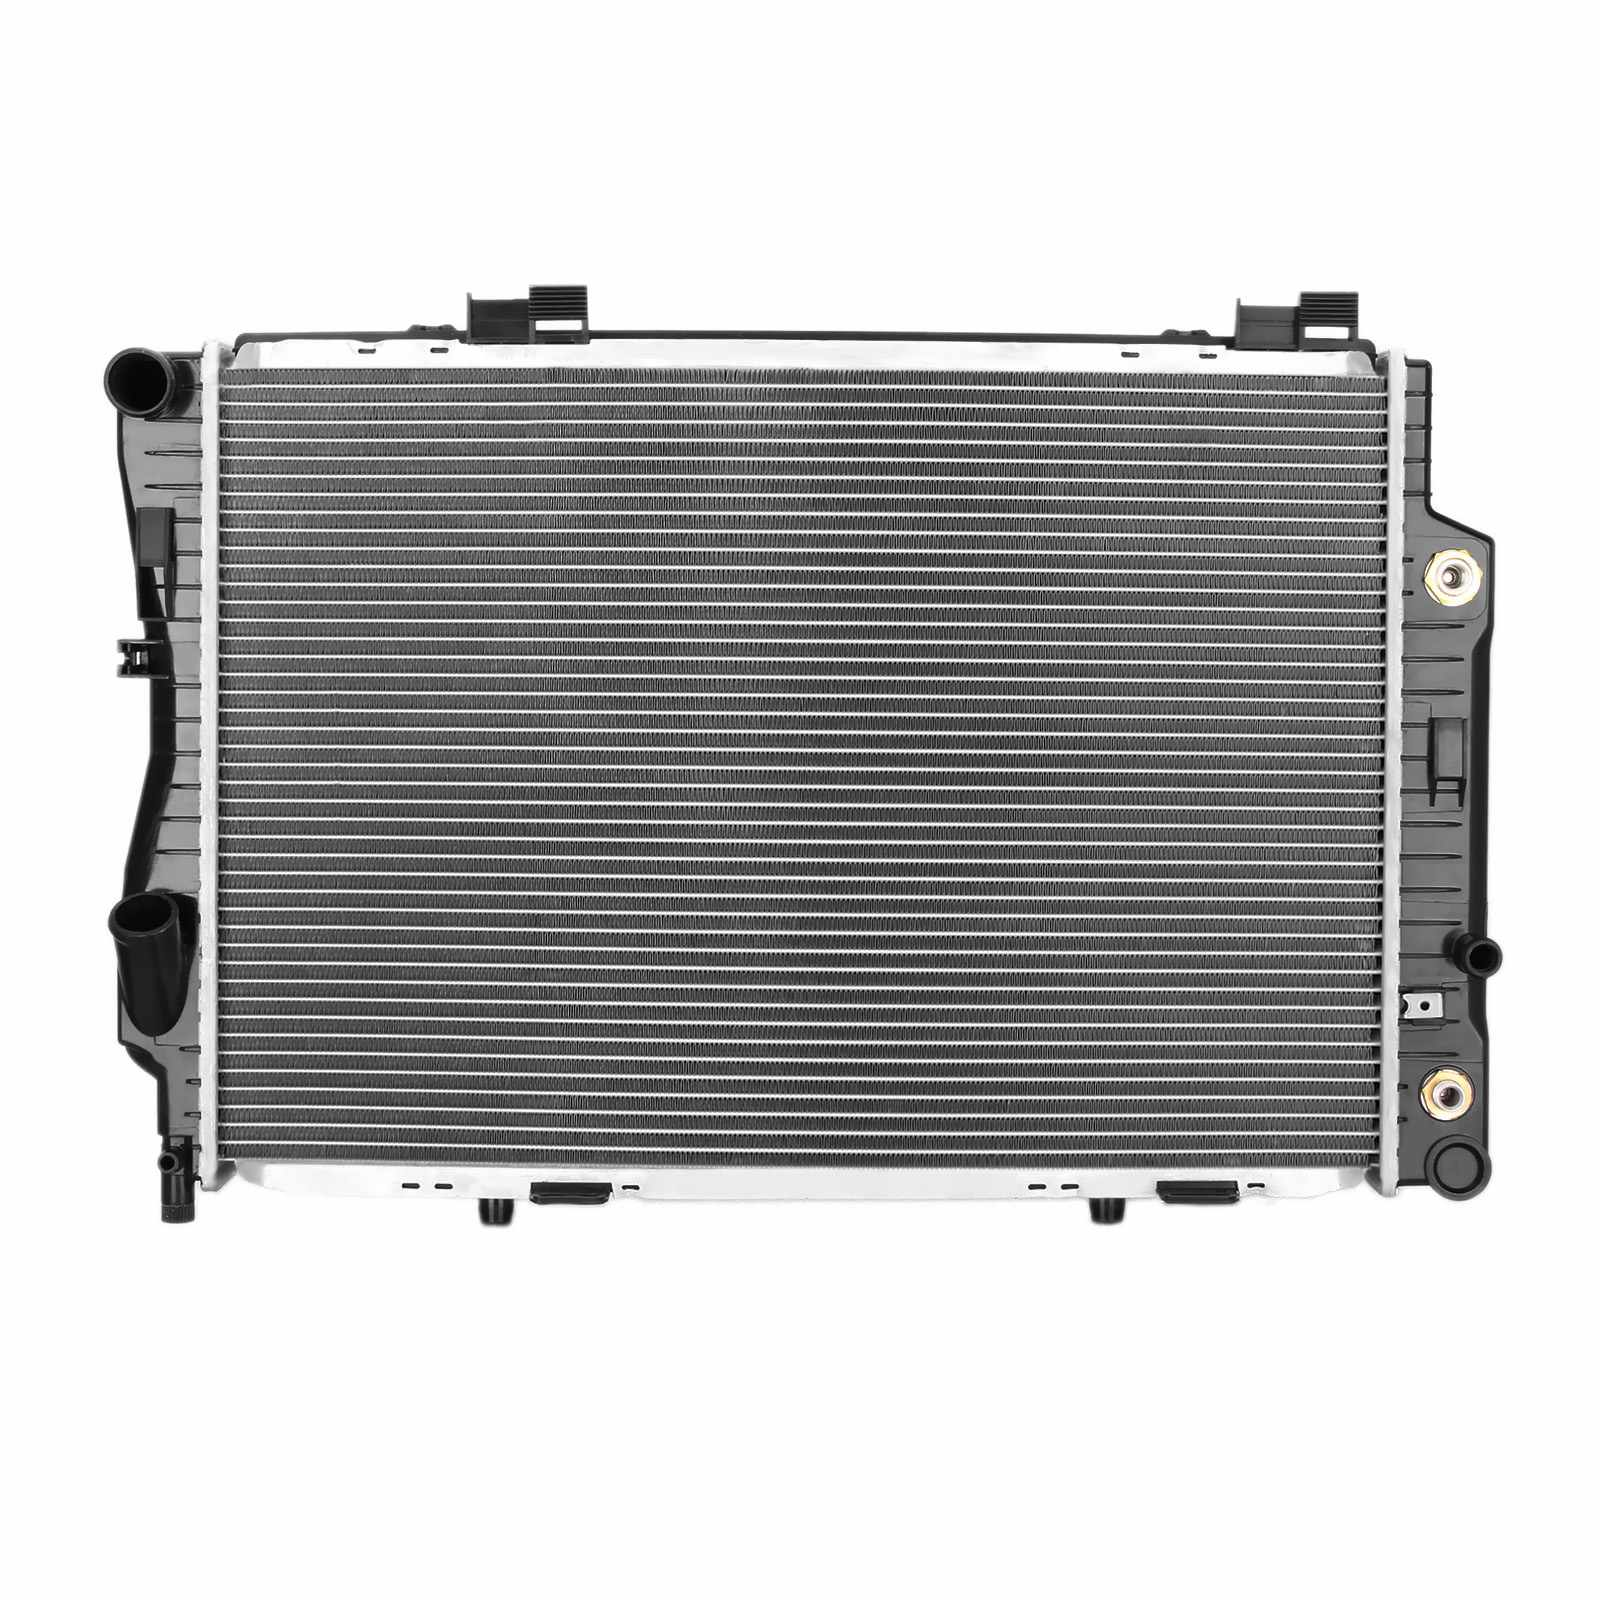 Dromedary New Radiator For Mercedes-Benz C36 AMG C280 94-97 Plastic Aluminium 2025004103 MERCEDES BENZ RADIATOR image3